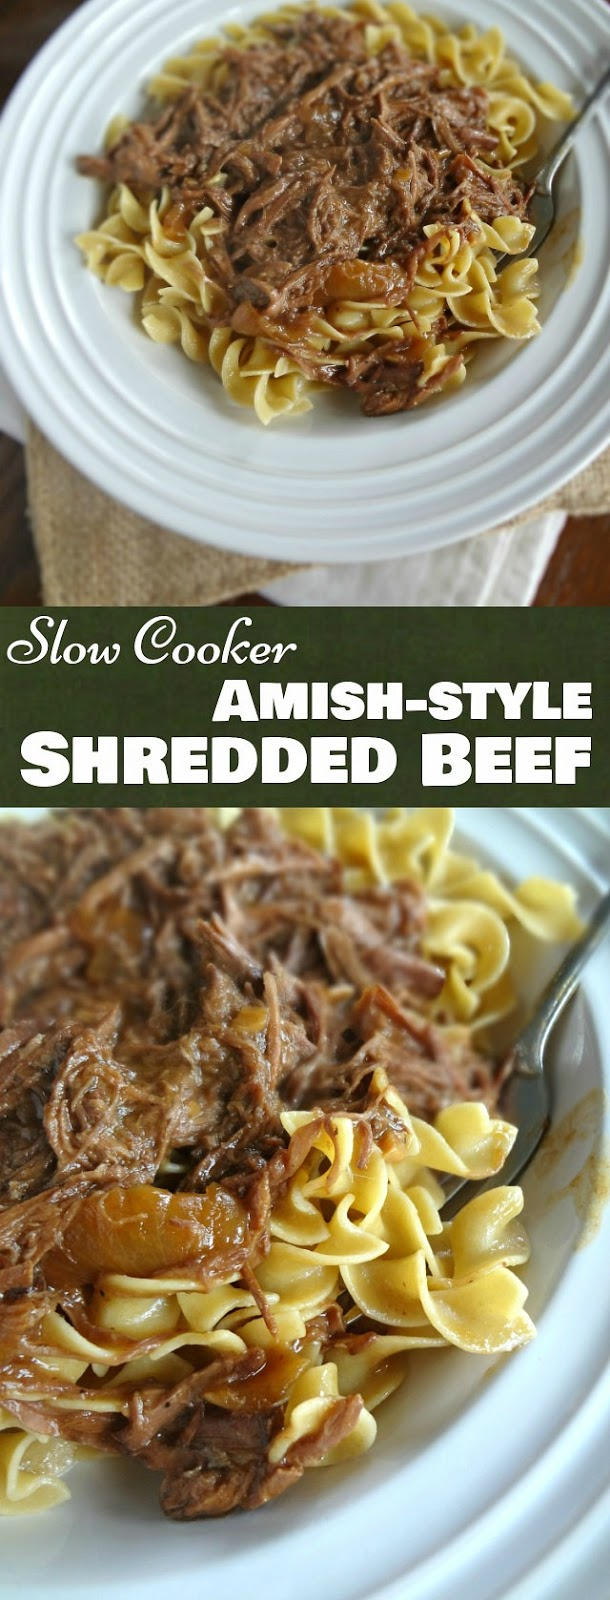 Slow Cooker Amish-style Shredded Beef